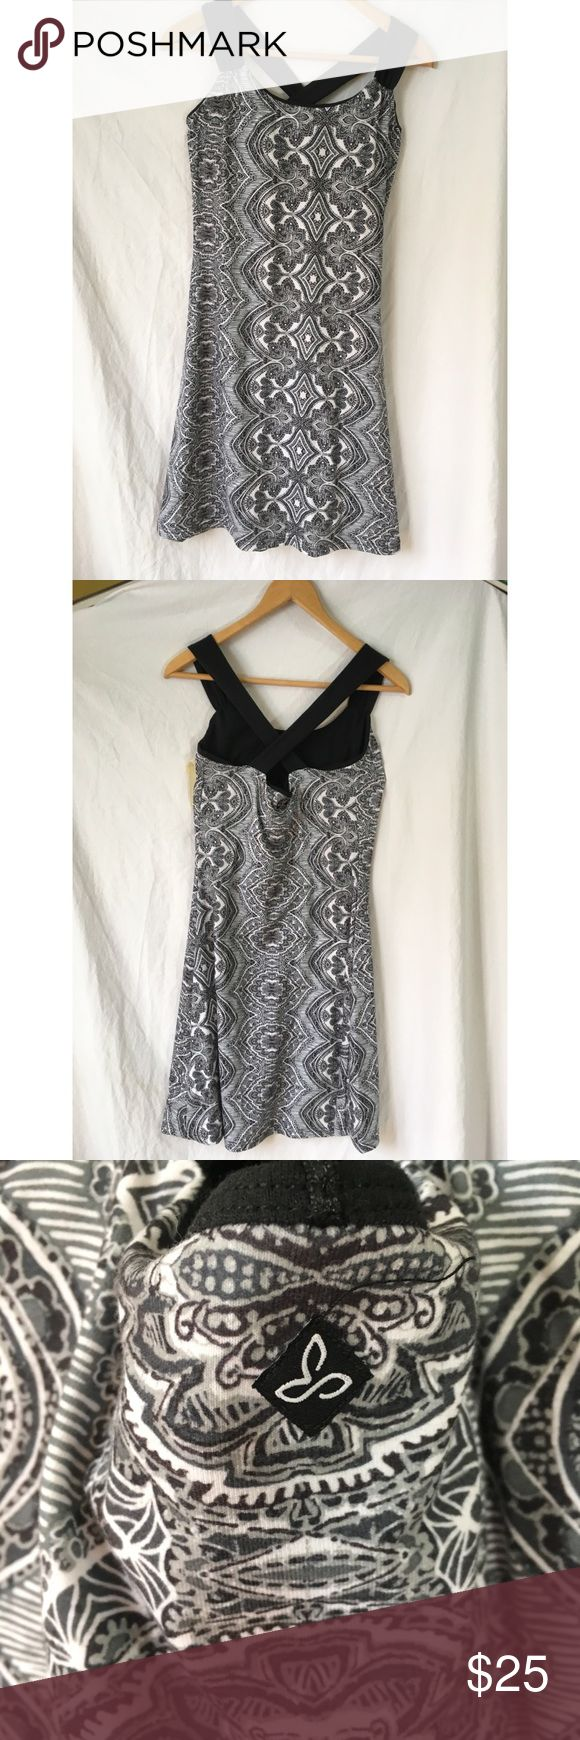 """Prana athletic dress with built in bra Excellent used condition. Hidden pocket on inside of dress. Bust 15.5"""" length 36"""" Prana Dresses Mini"""